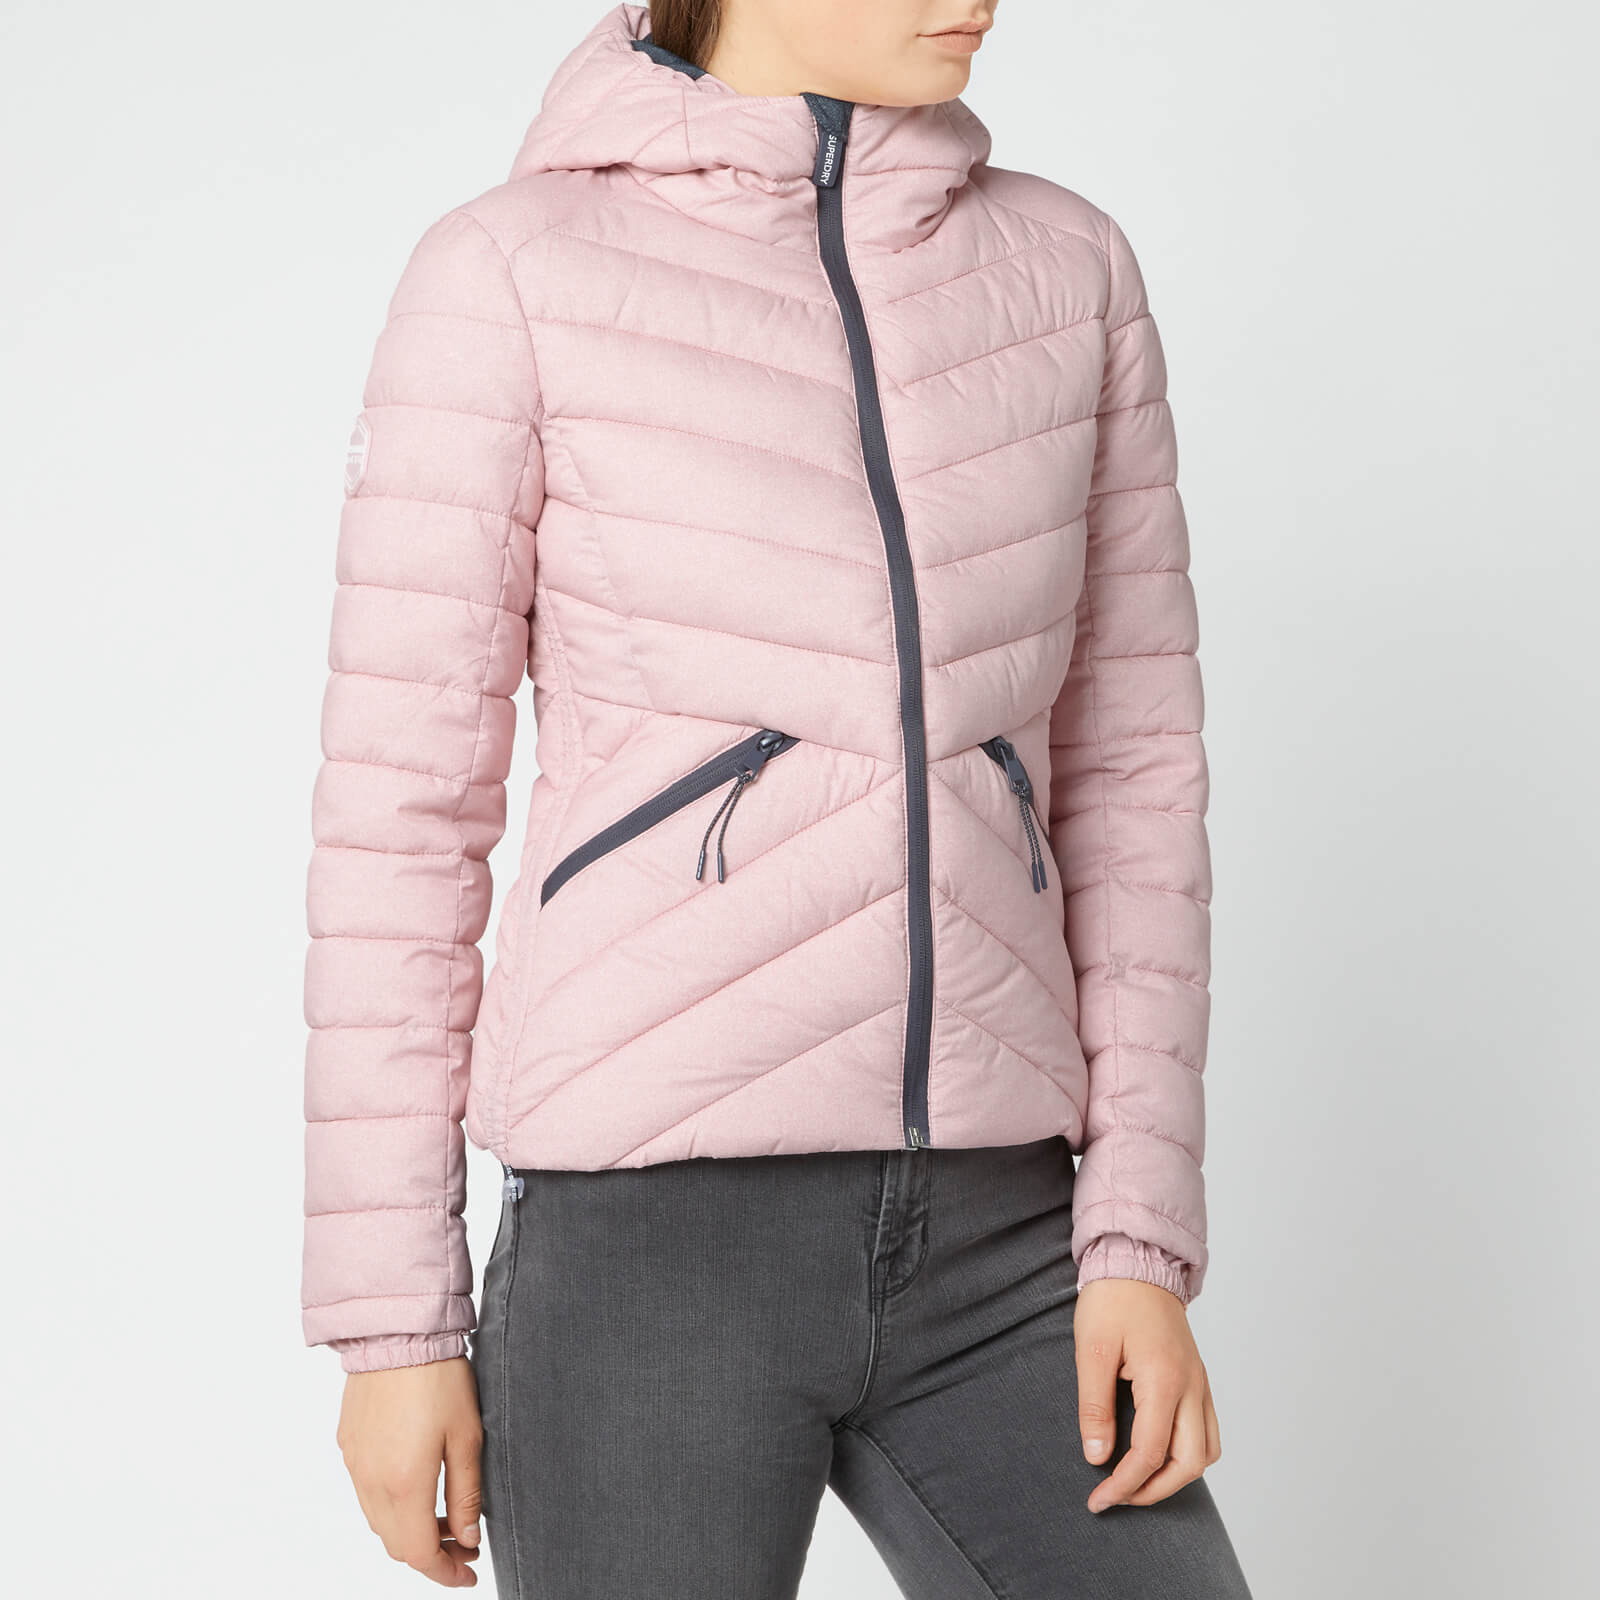 Superdry Women's Helio Fuji Hooded Jacket - Pink Marl